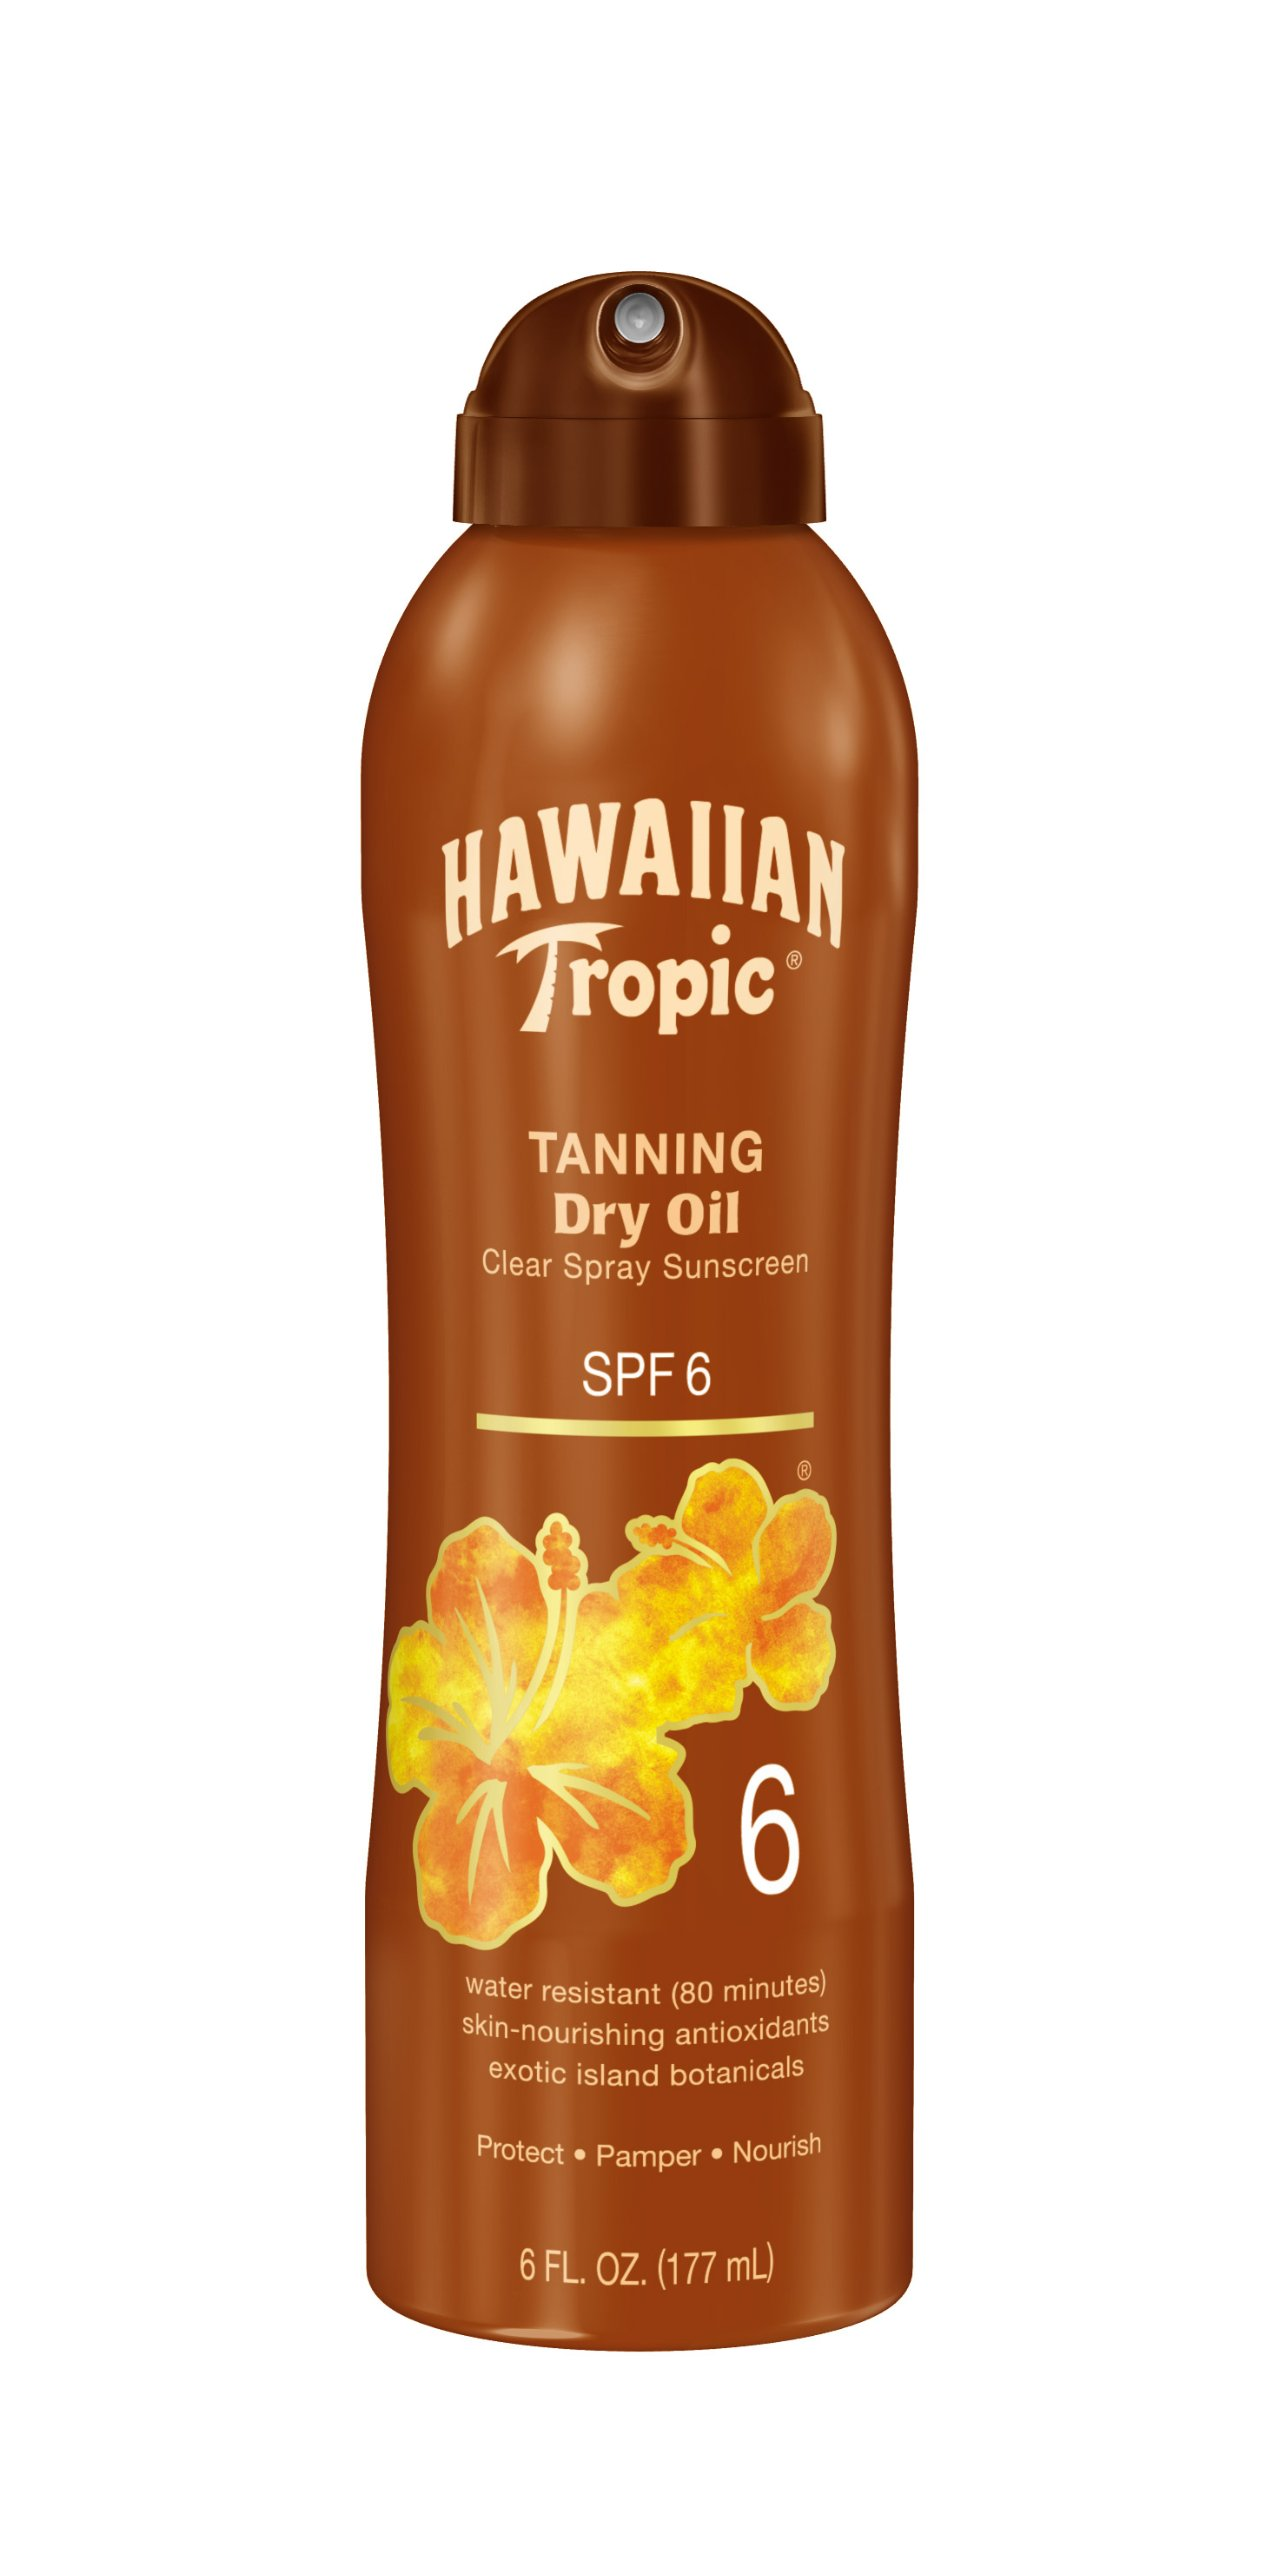 Hawaiian Tropic Golden Tanning Dry Oil SPF 6 6 oz (Pack of 3) by Hawaiian Tropic